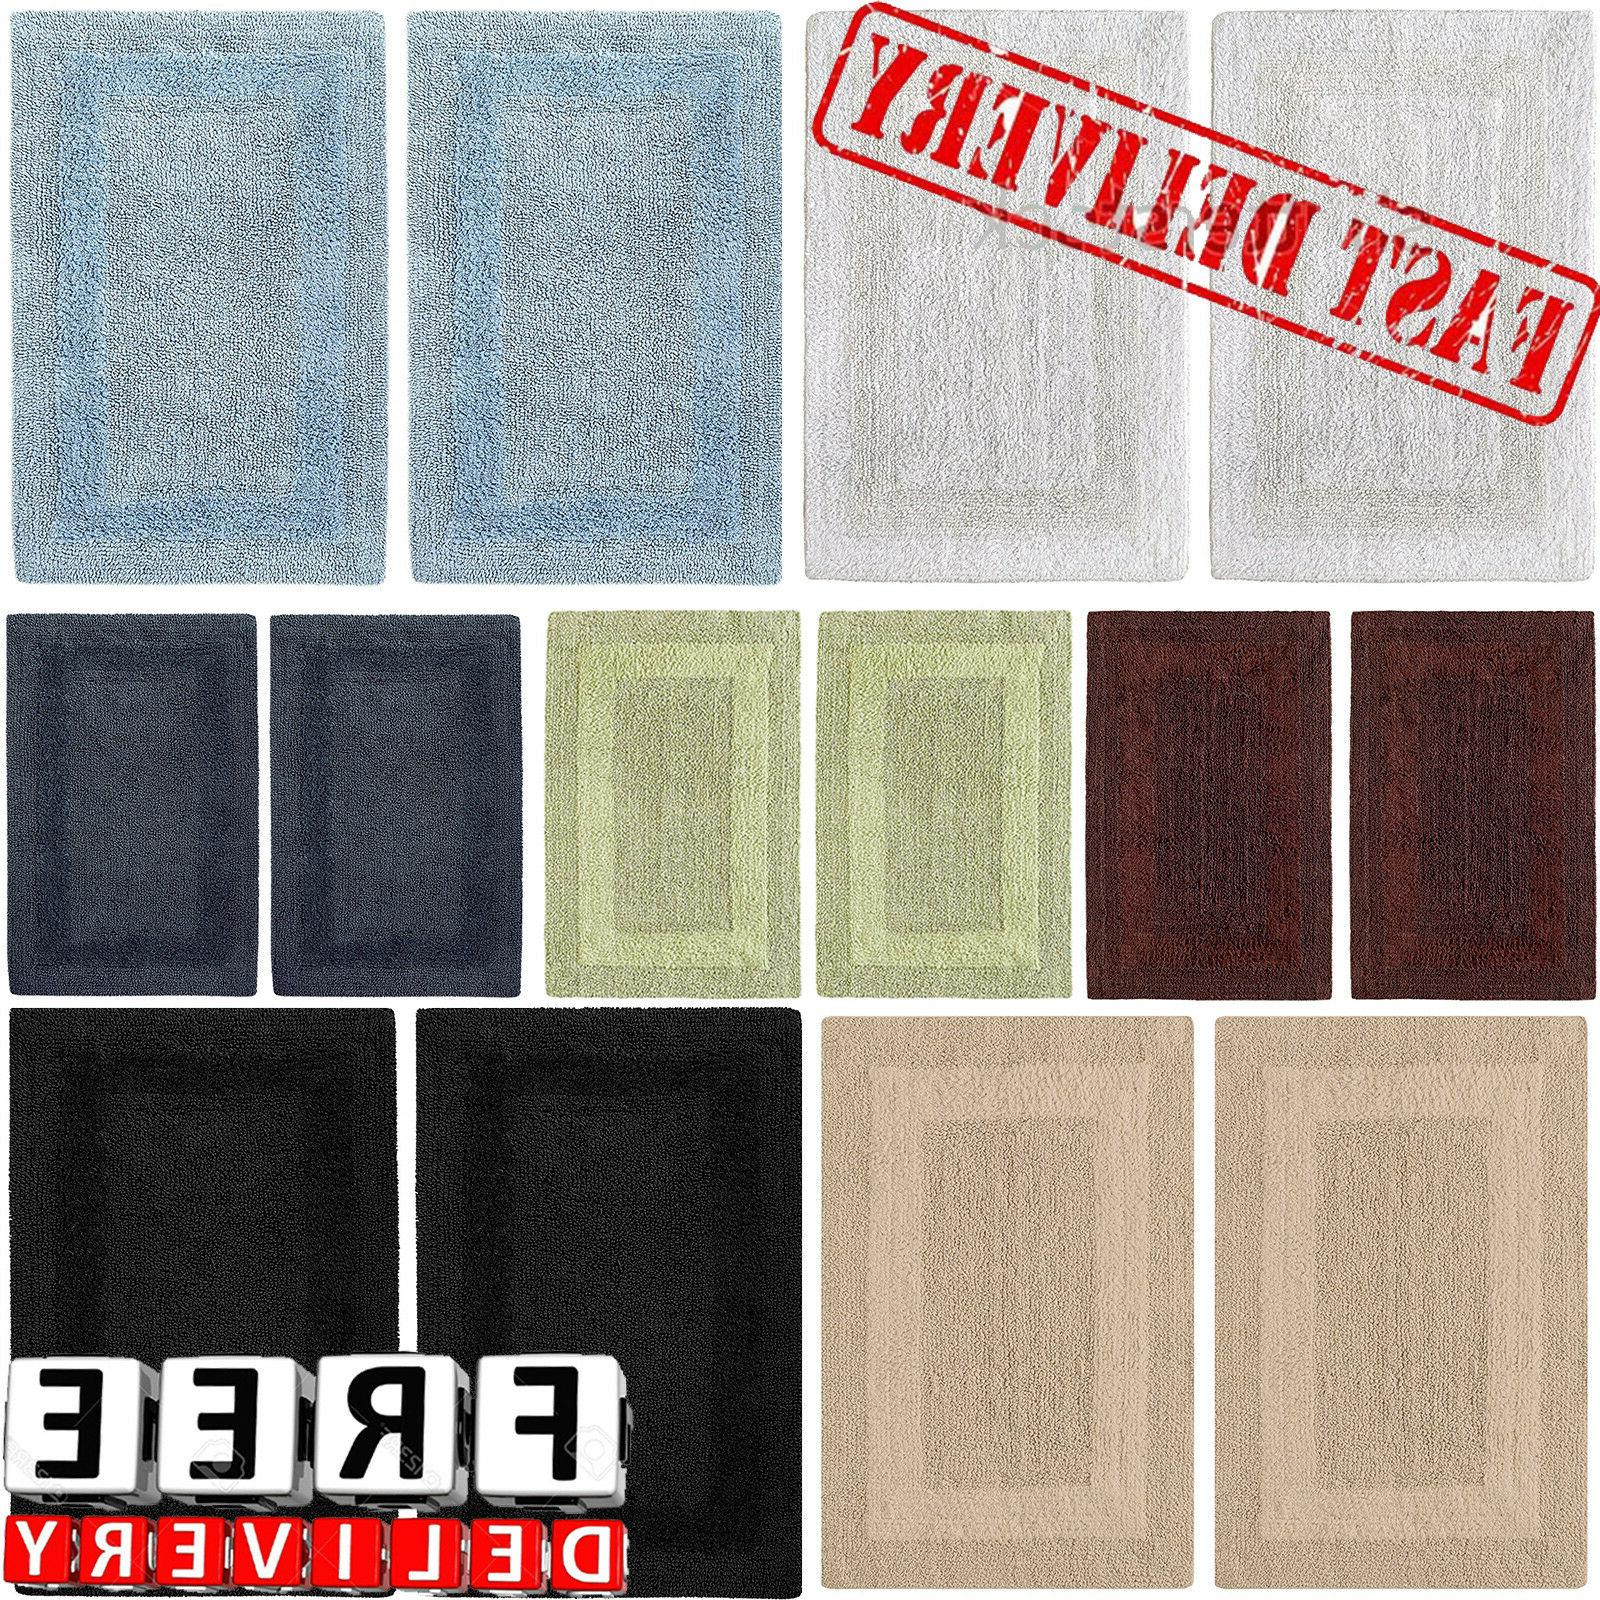 Bath Mat Set 2 Piece Rug Cotton Reversible Shower Floor Tub